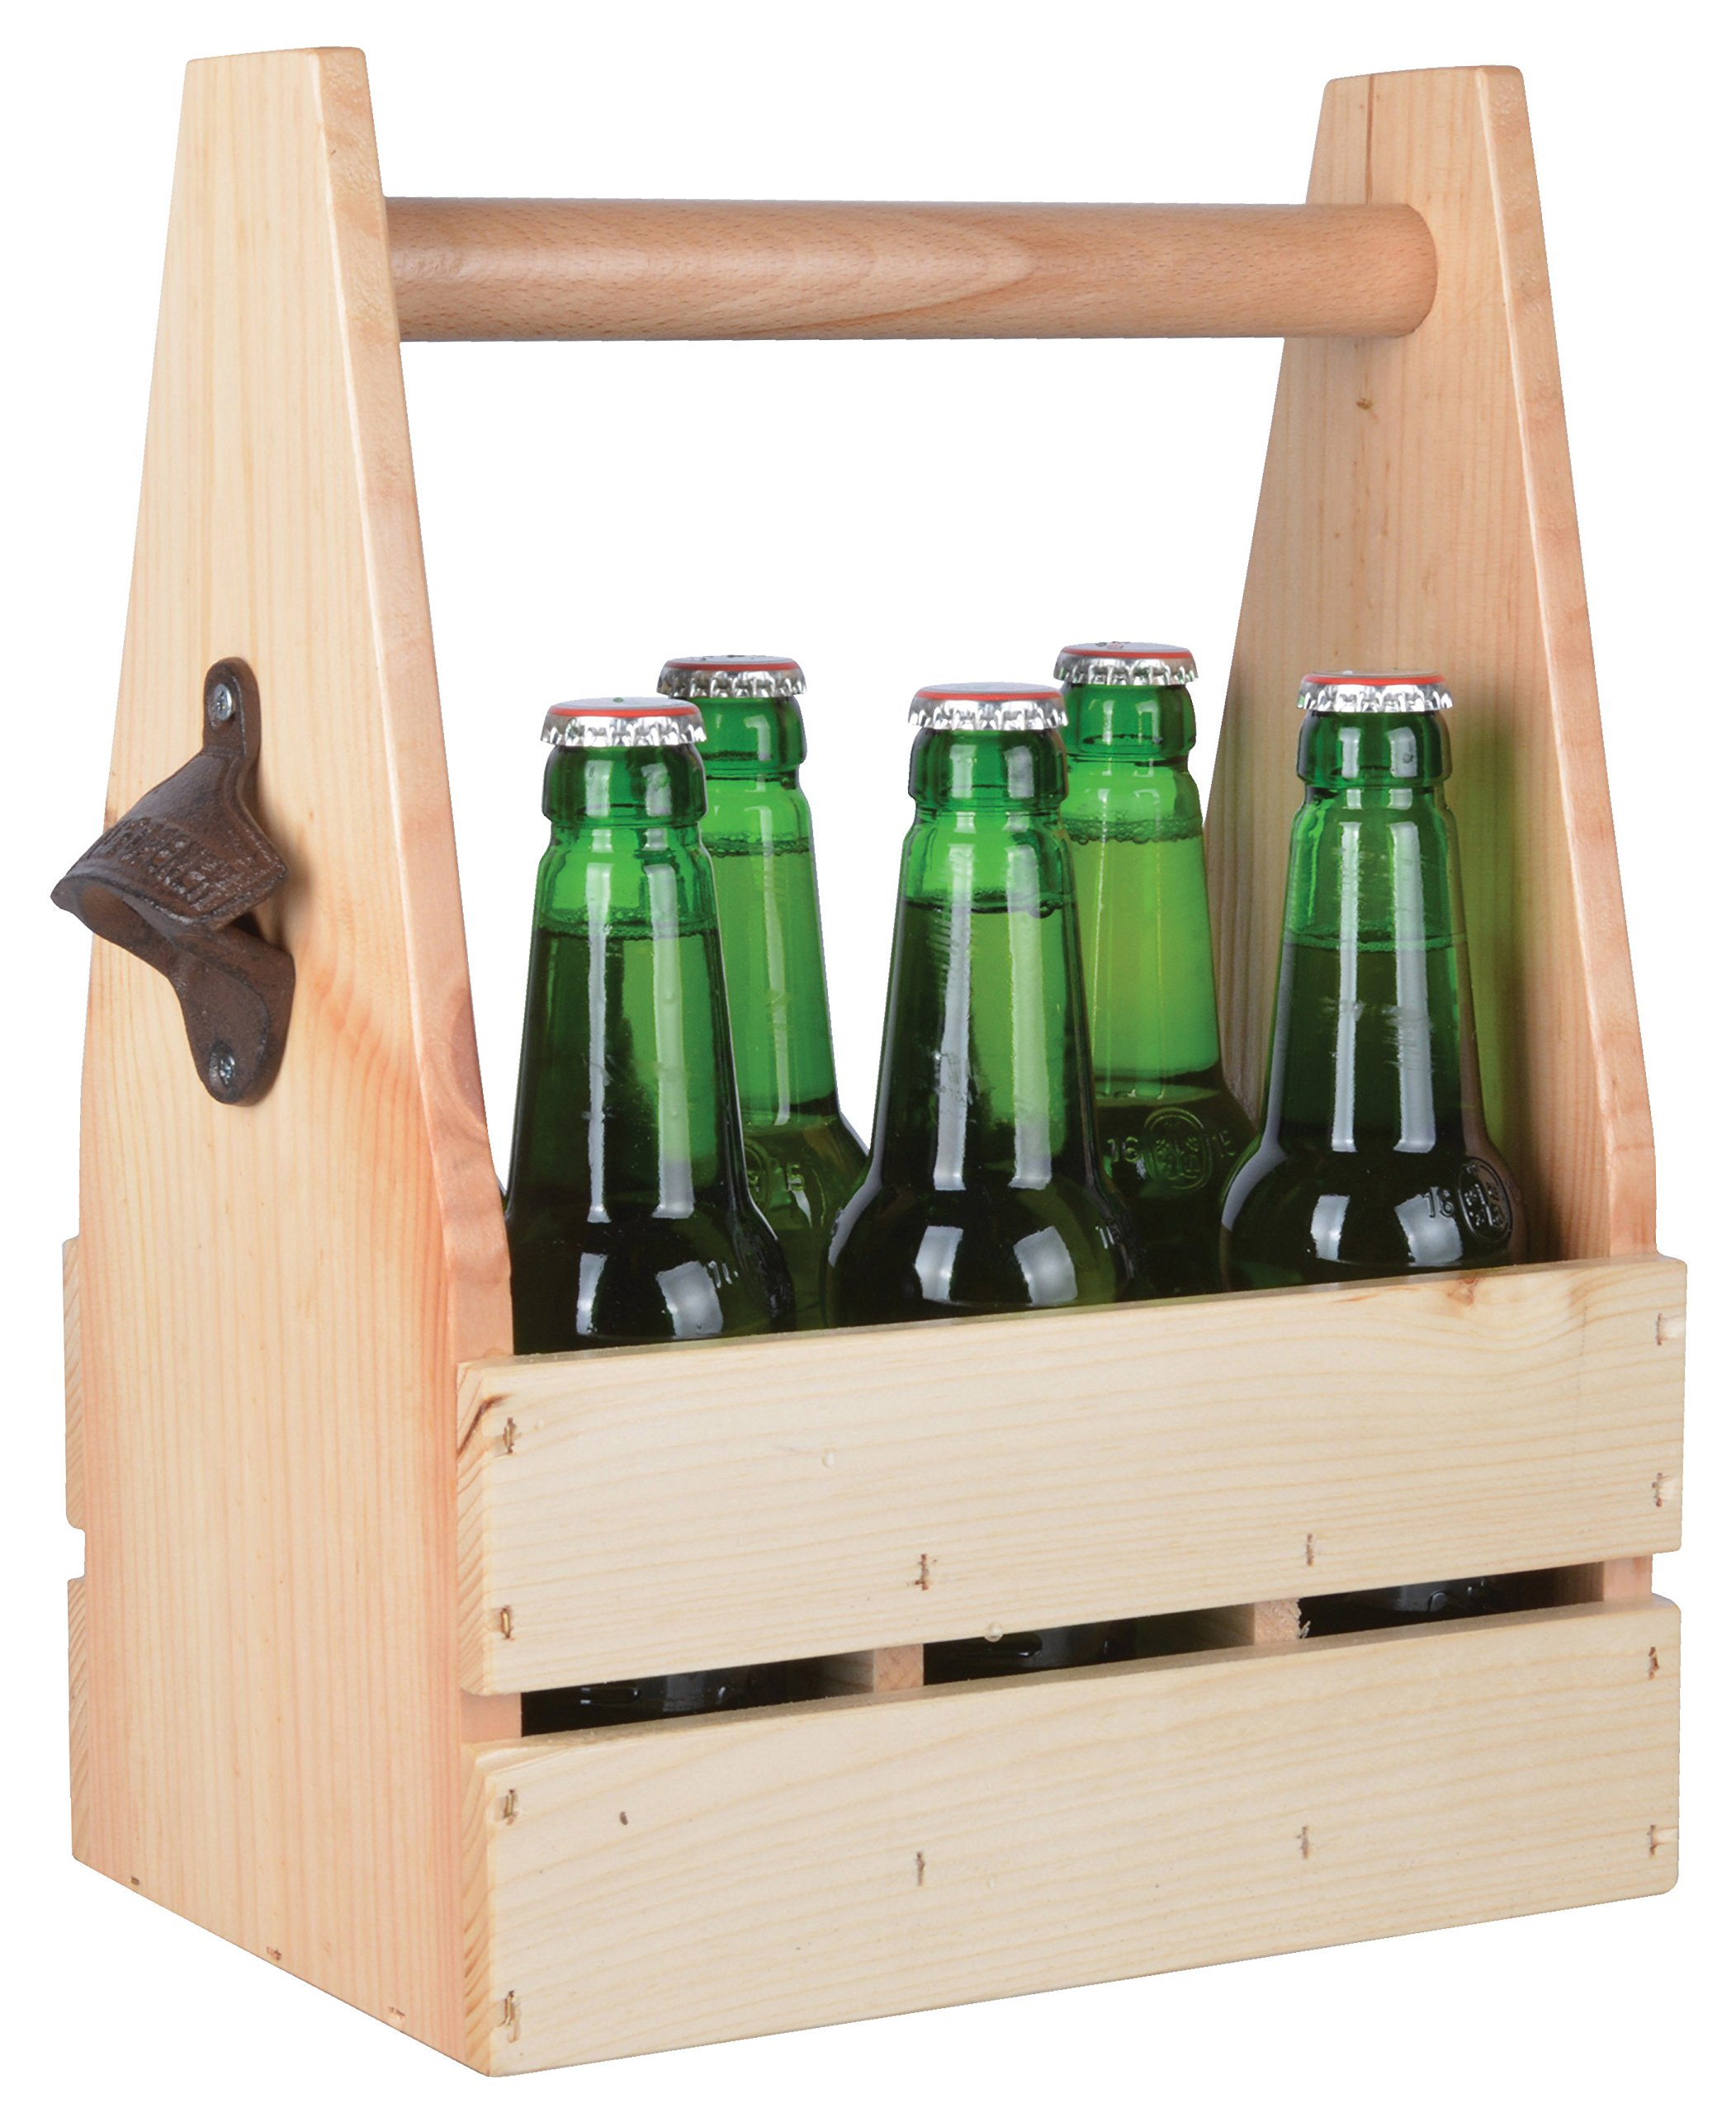 Esschert Design C2060 Pine Wood Bottle Crate with Opener, Brown